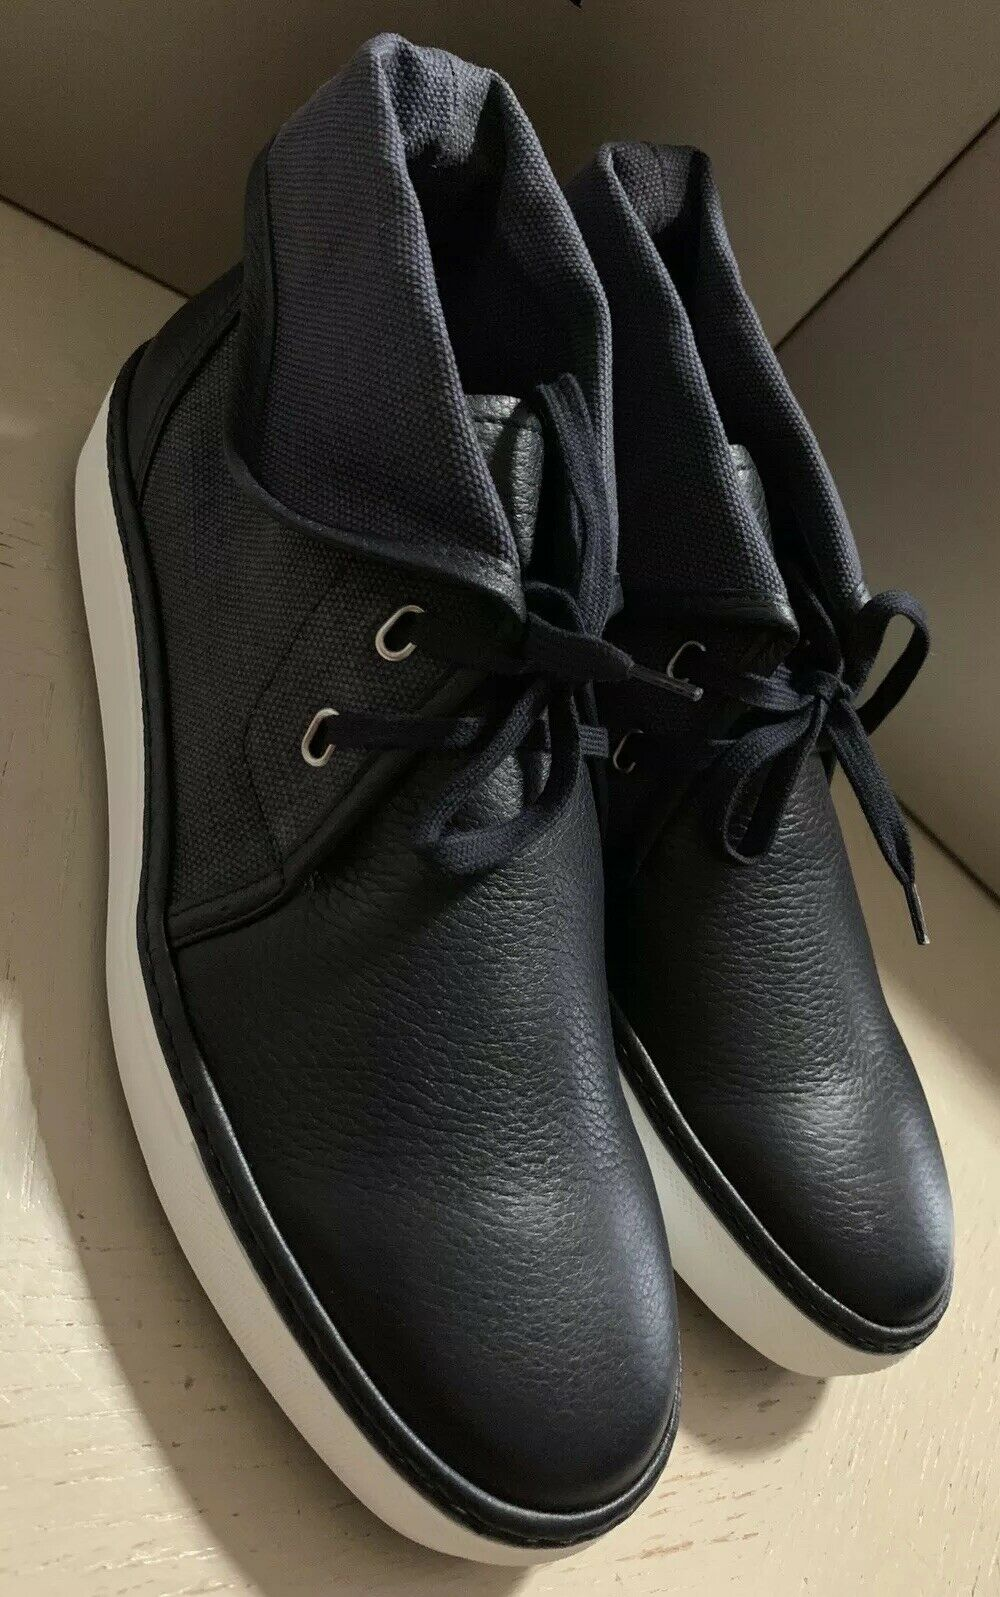 New  Giorgio Armani Mens Leather Sneakers shoes Navy ( Night) 9 US X2M248